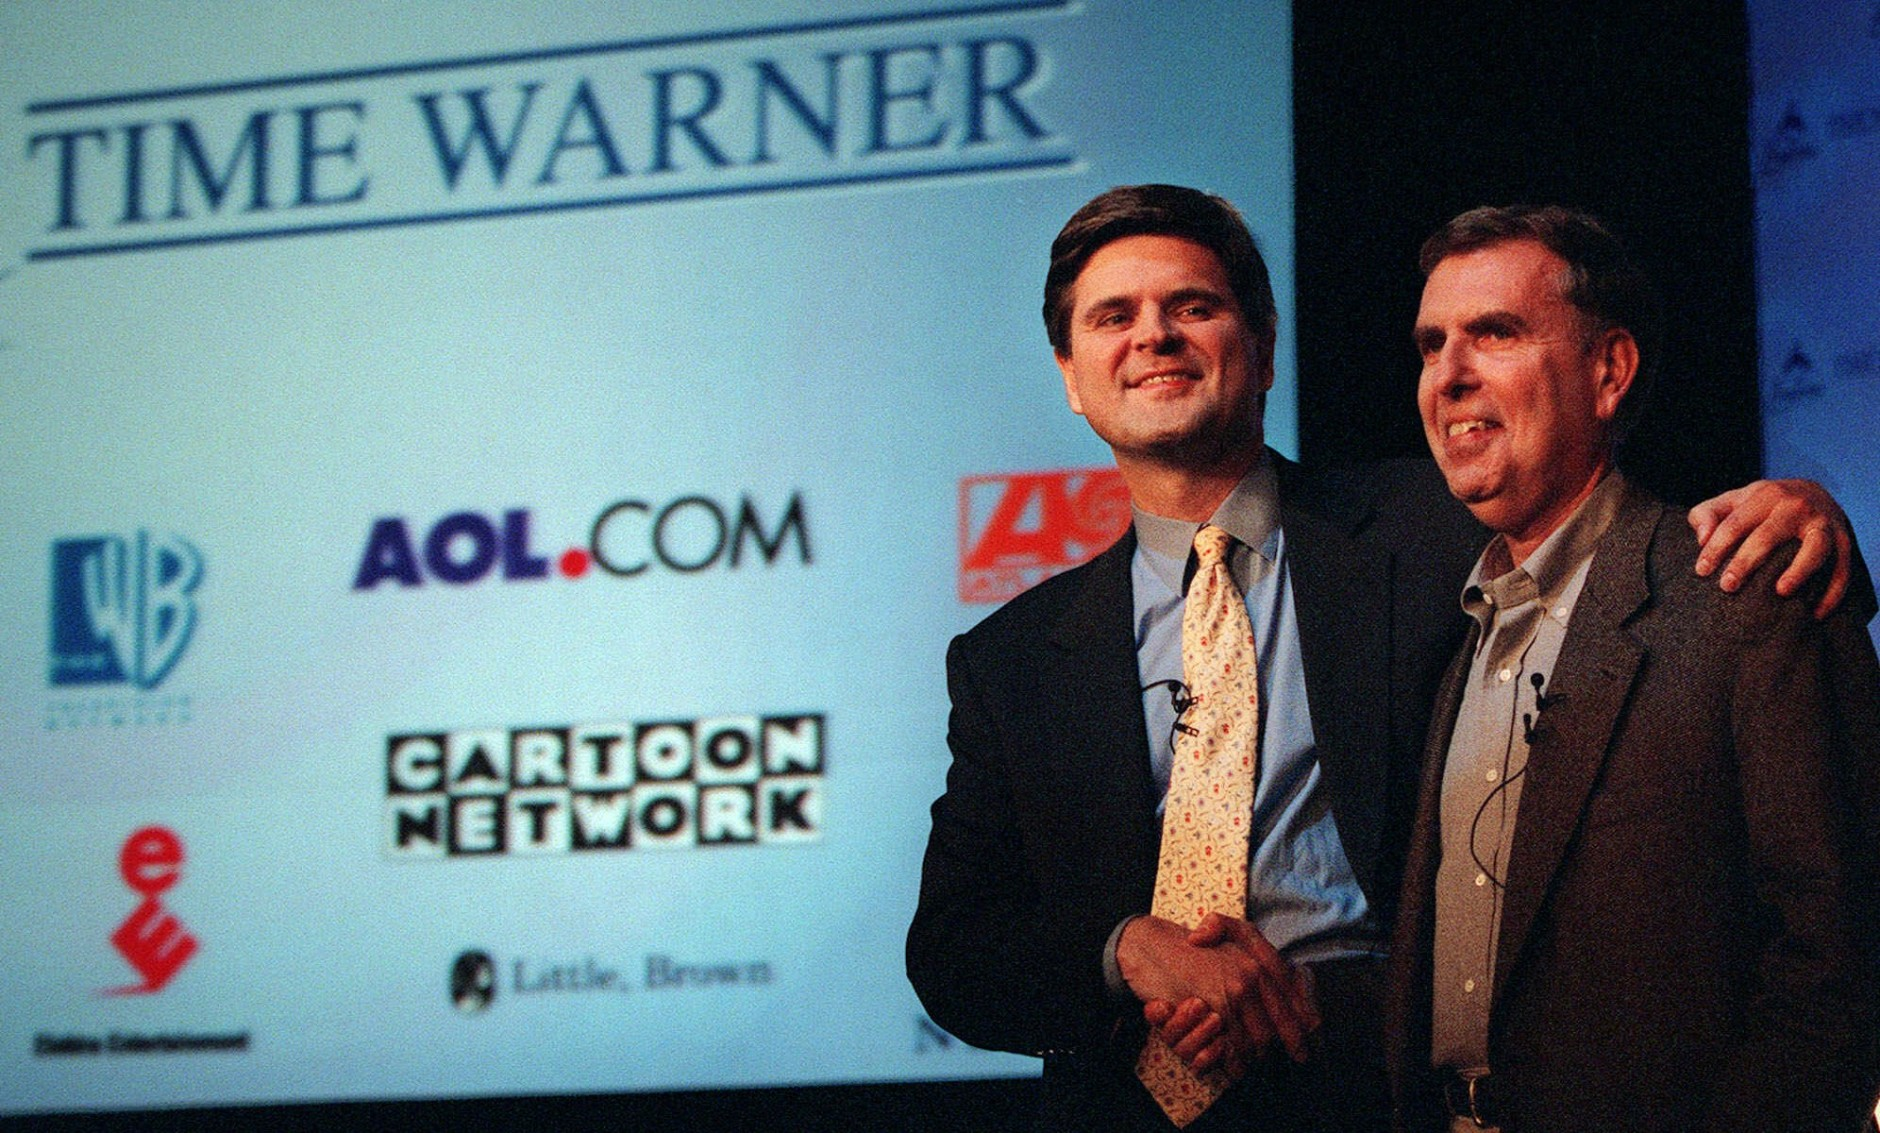 America Online's chairman and chief executive, Steve Case, left, and Time Warner's chairman and chief executive, Gerald Levin, shake hands before a news conference Monday, Jan. 10, 2000, in New York. Time Warner, the world's largest media and entertainment company, is being acquired by America Online for about $166 billion in stock in what would be the biggest corporate merger ever. (AP Photo/Stuart Ramson)